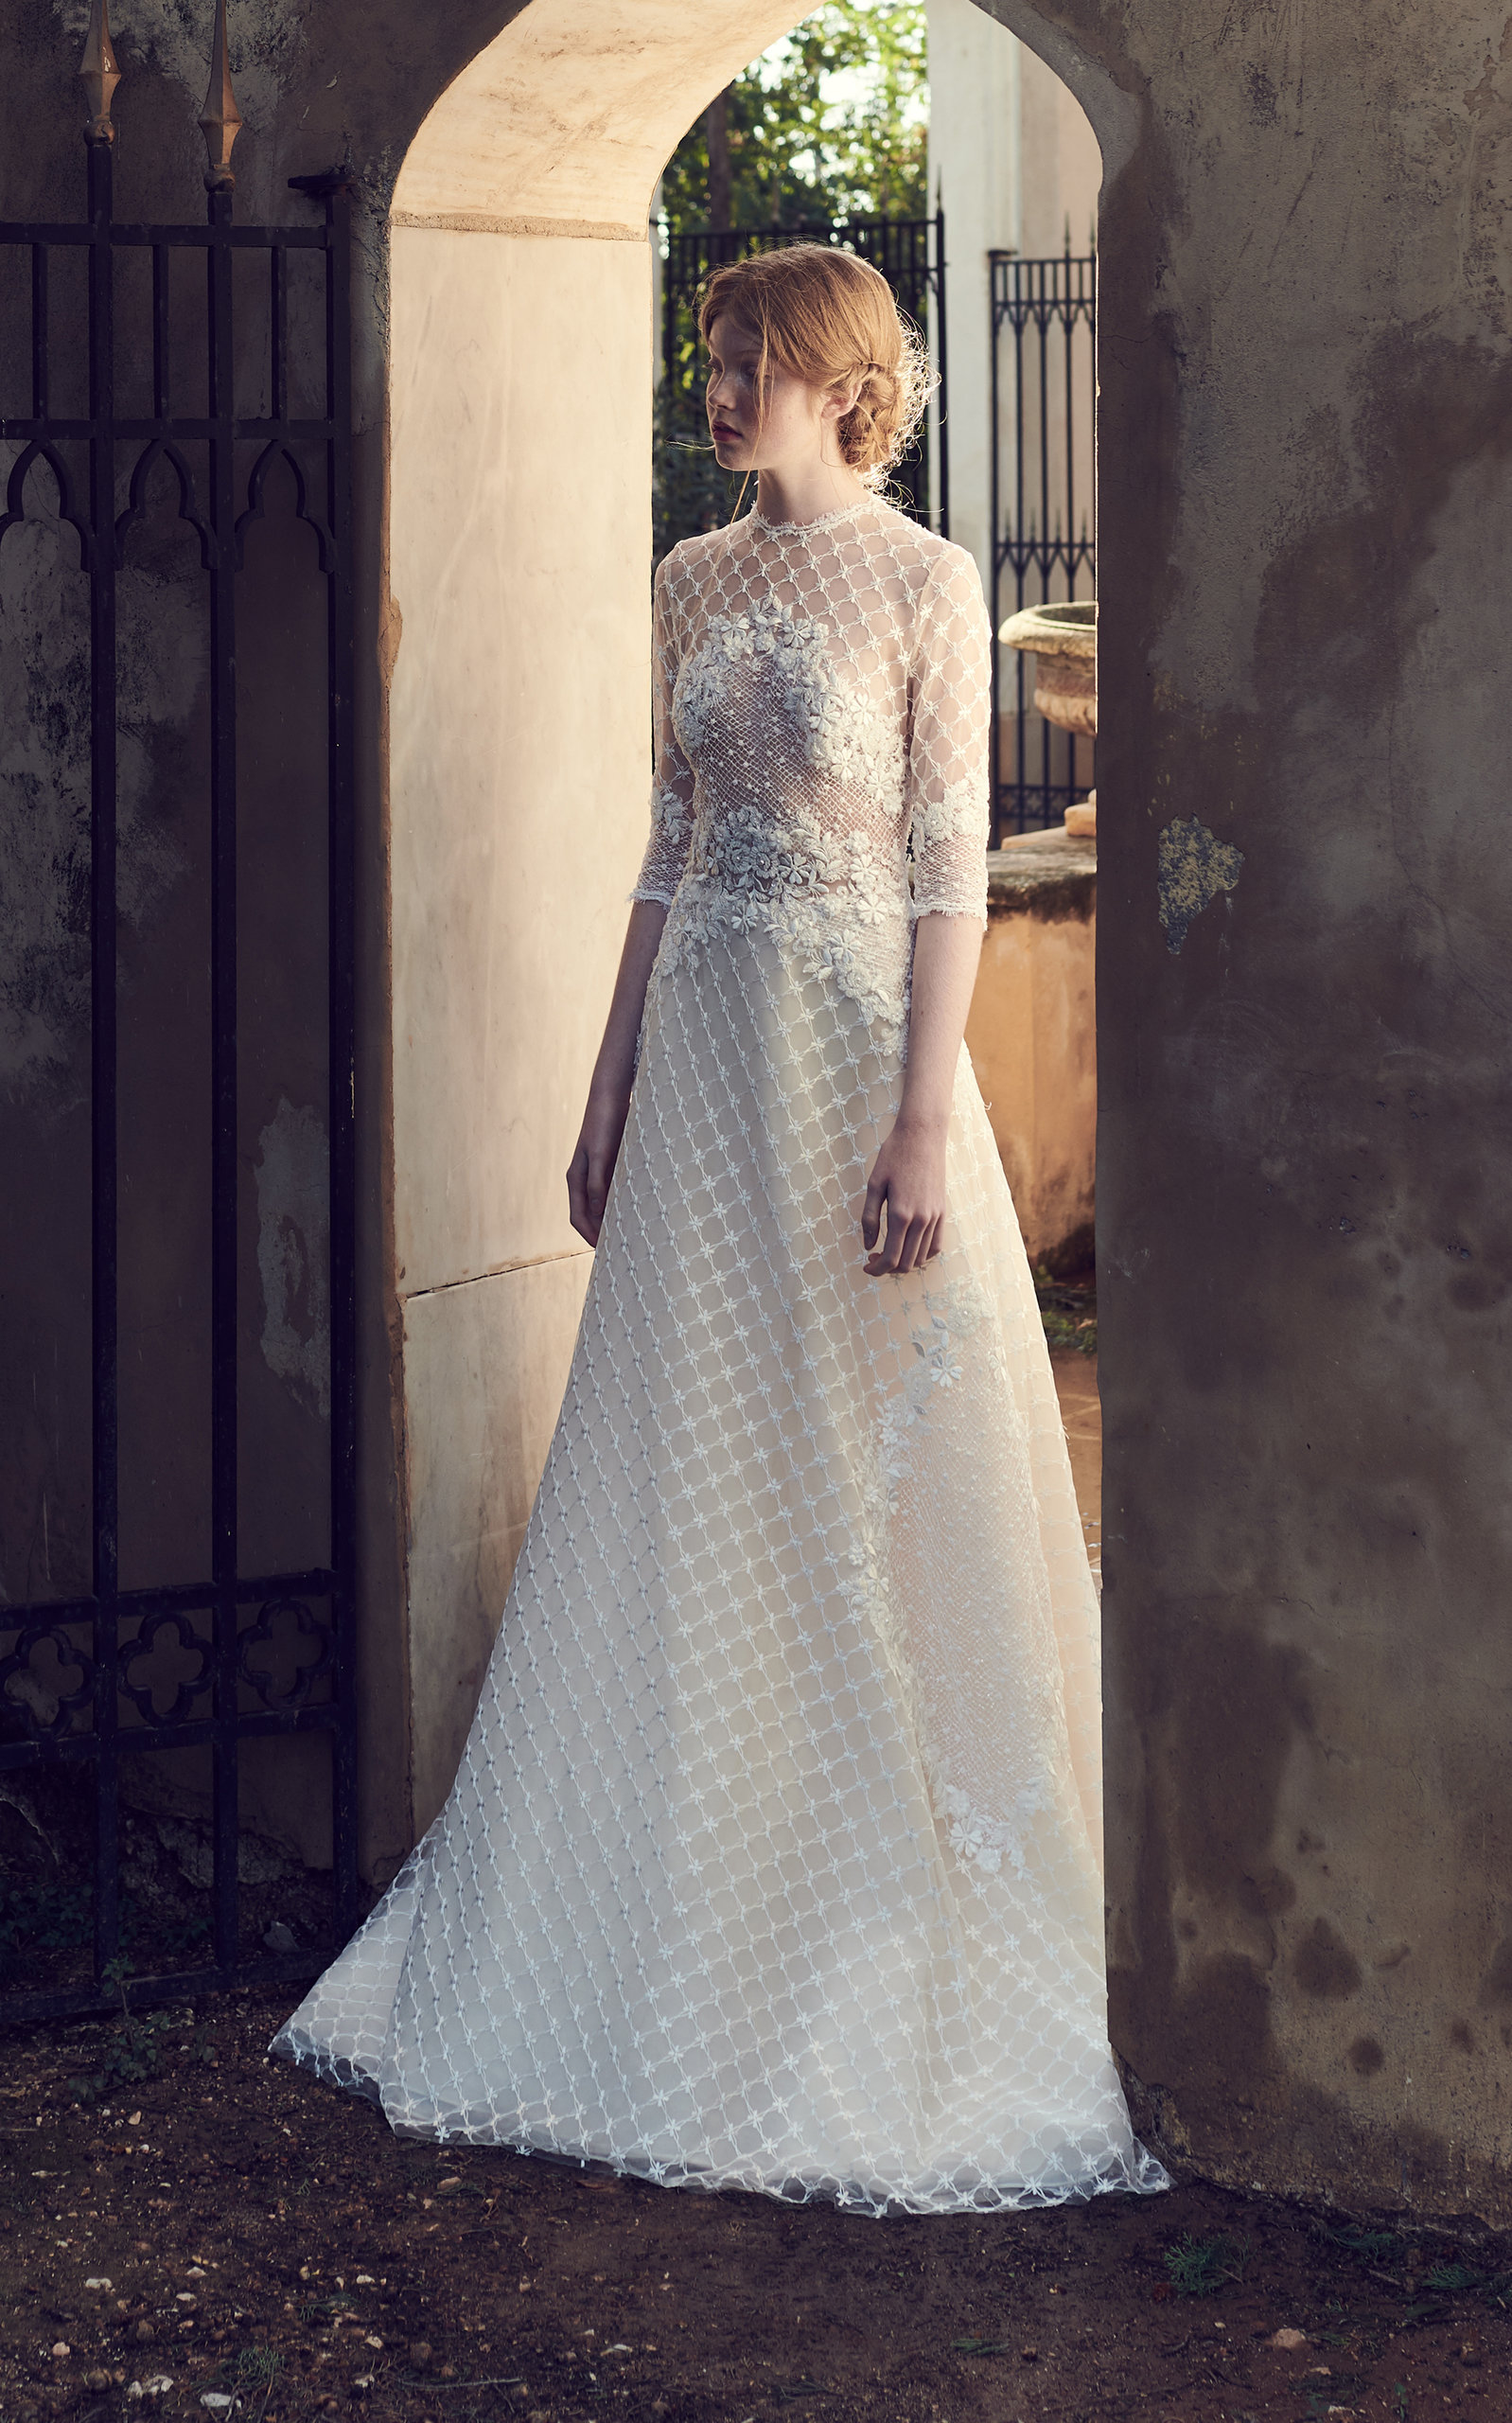 COSTARELLOS BRIDAL Geometric Embroidered Tulle Gown in White